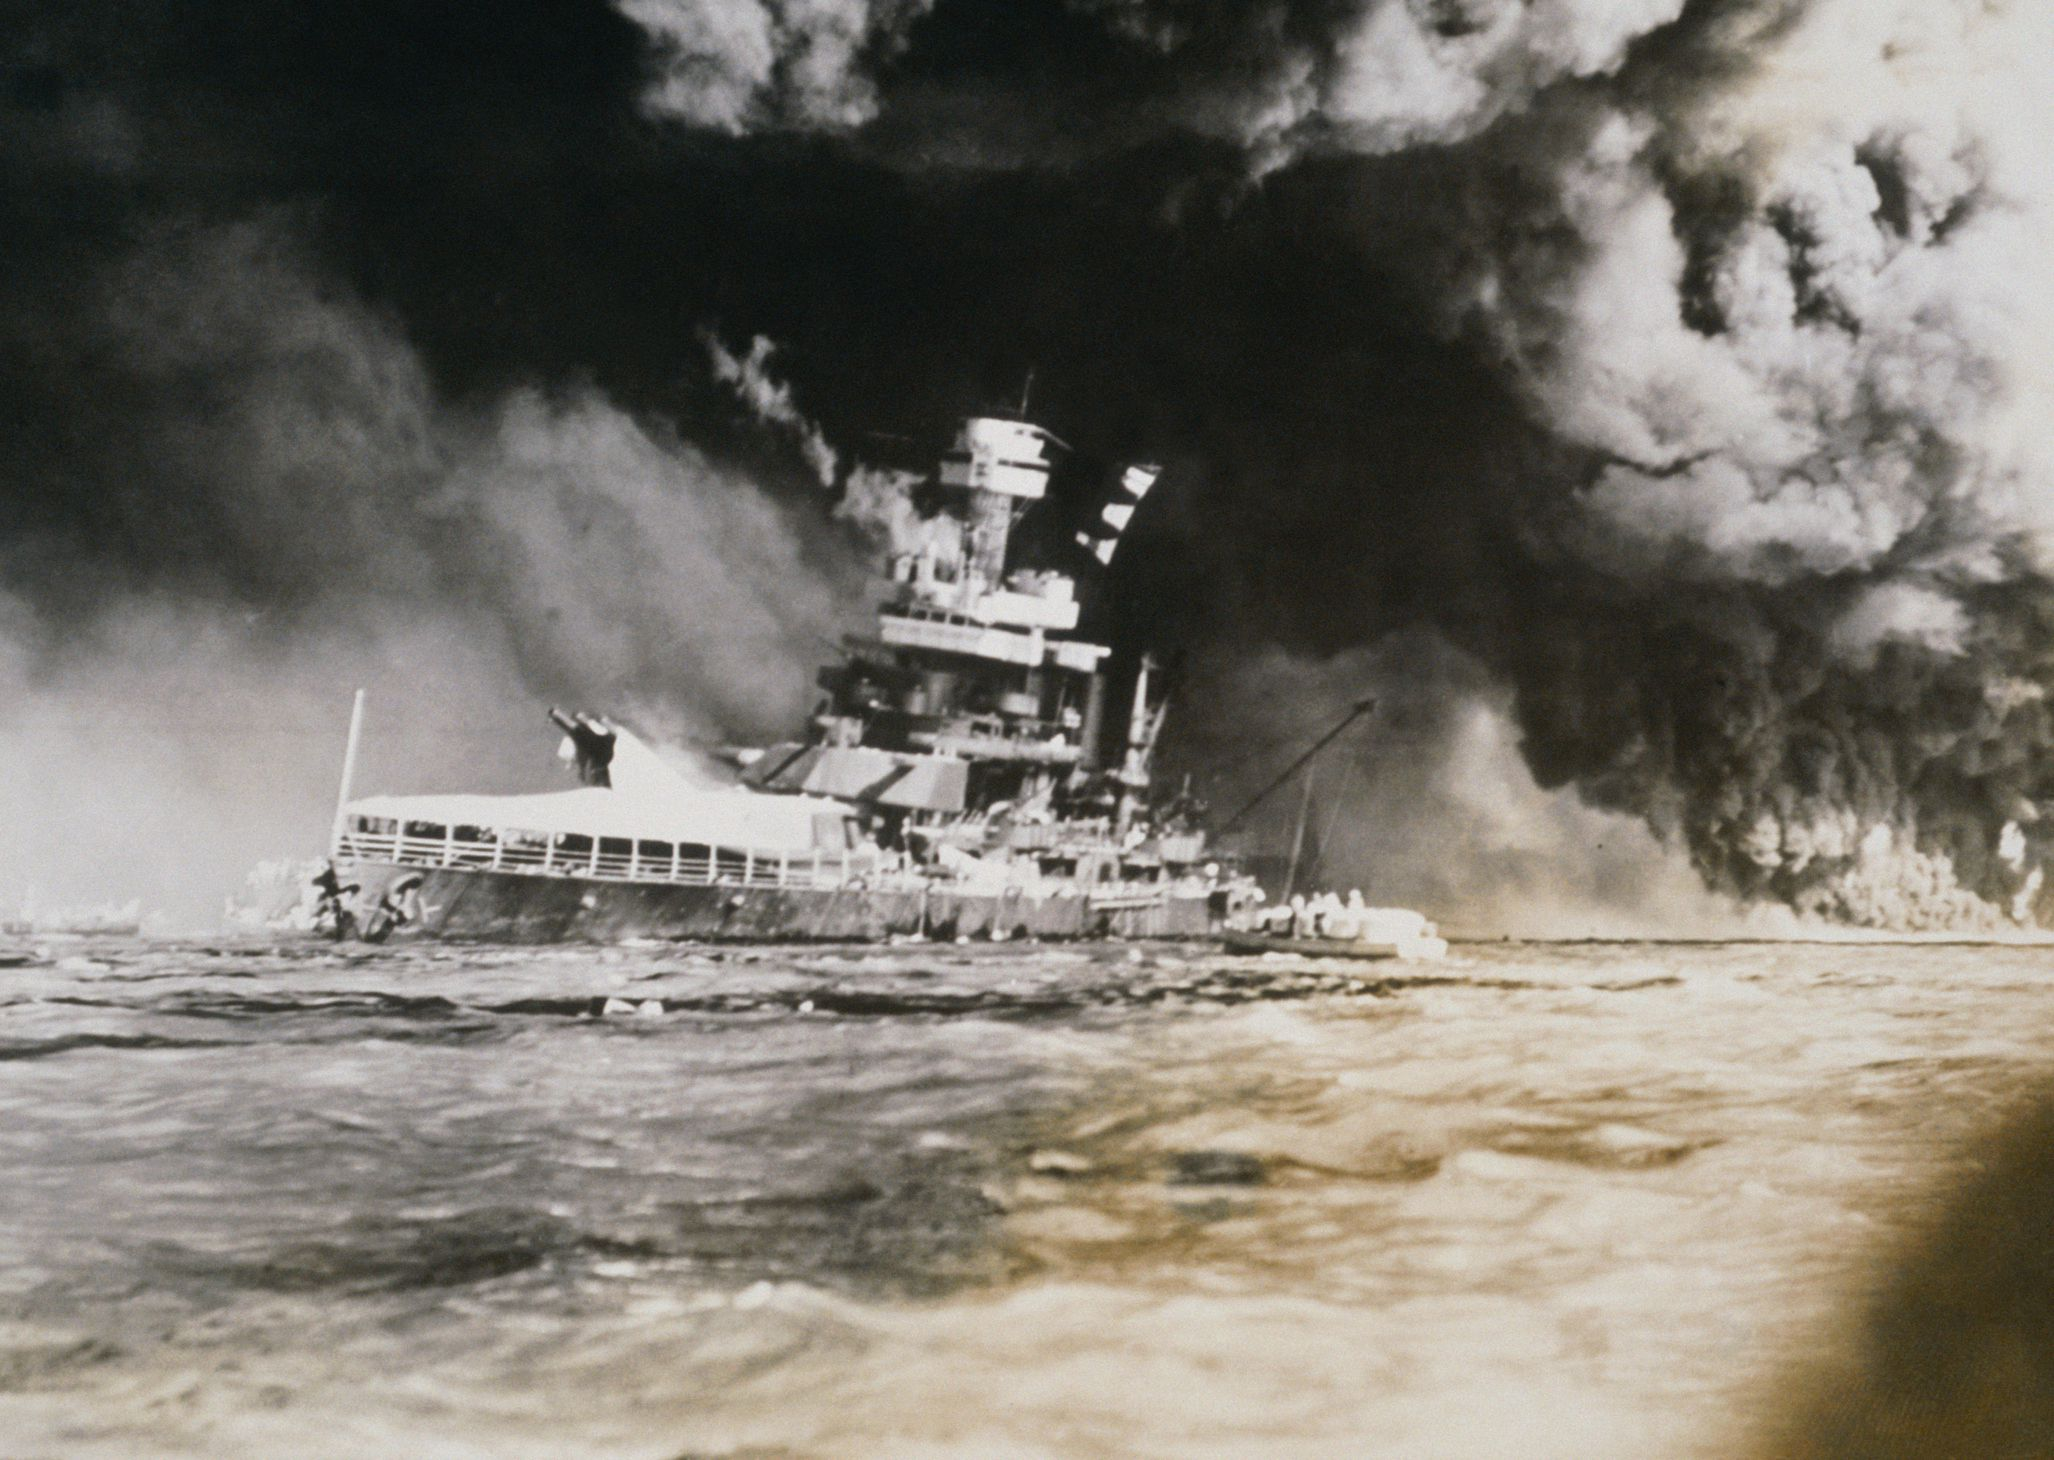 The On Pearl Harbor December 7